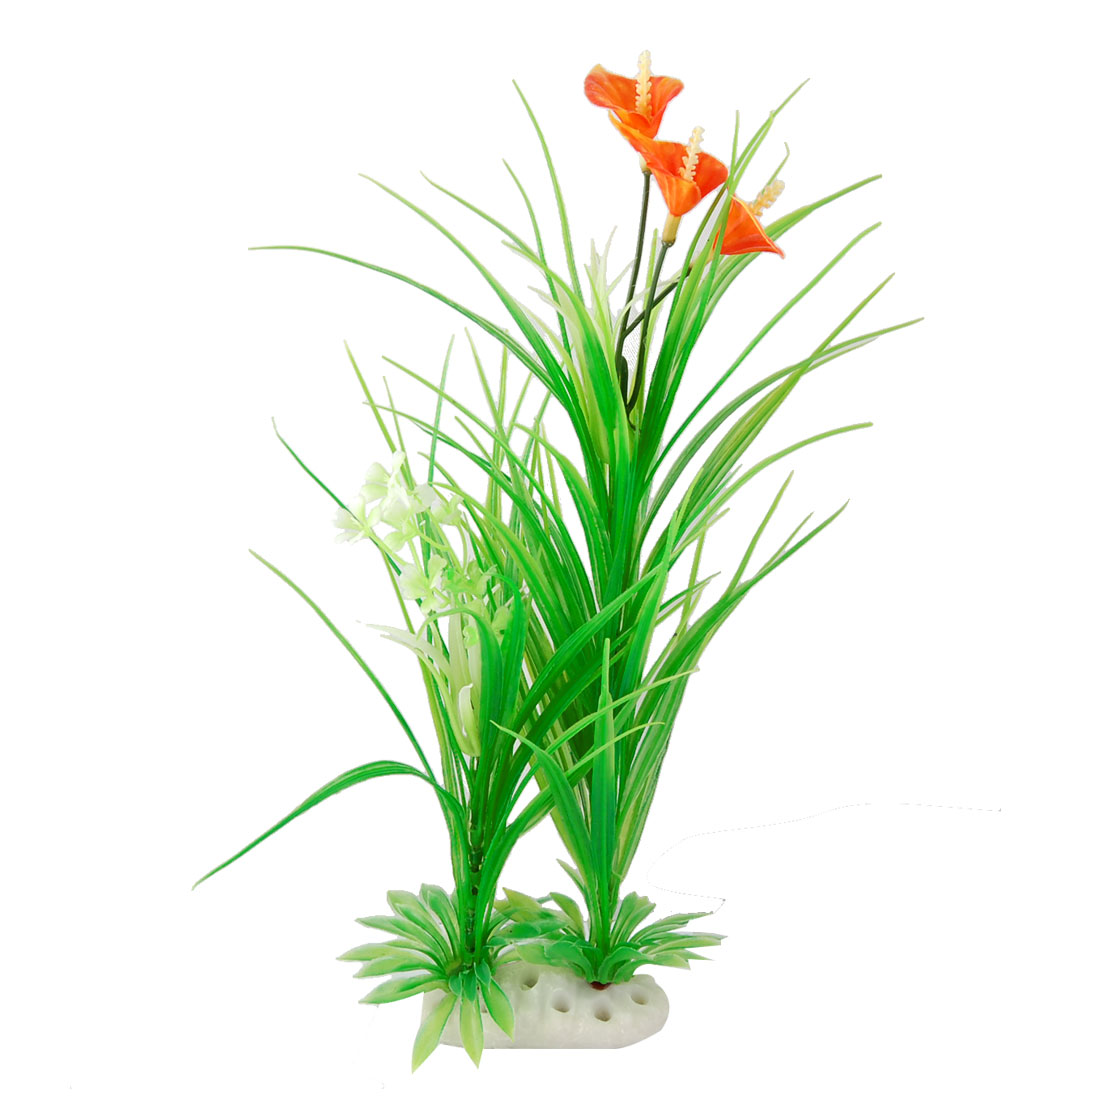 Fish Tank Green Grass Aquascaping Orange Red Floral Plant Ornament